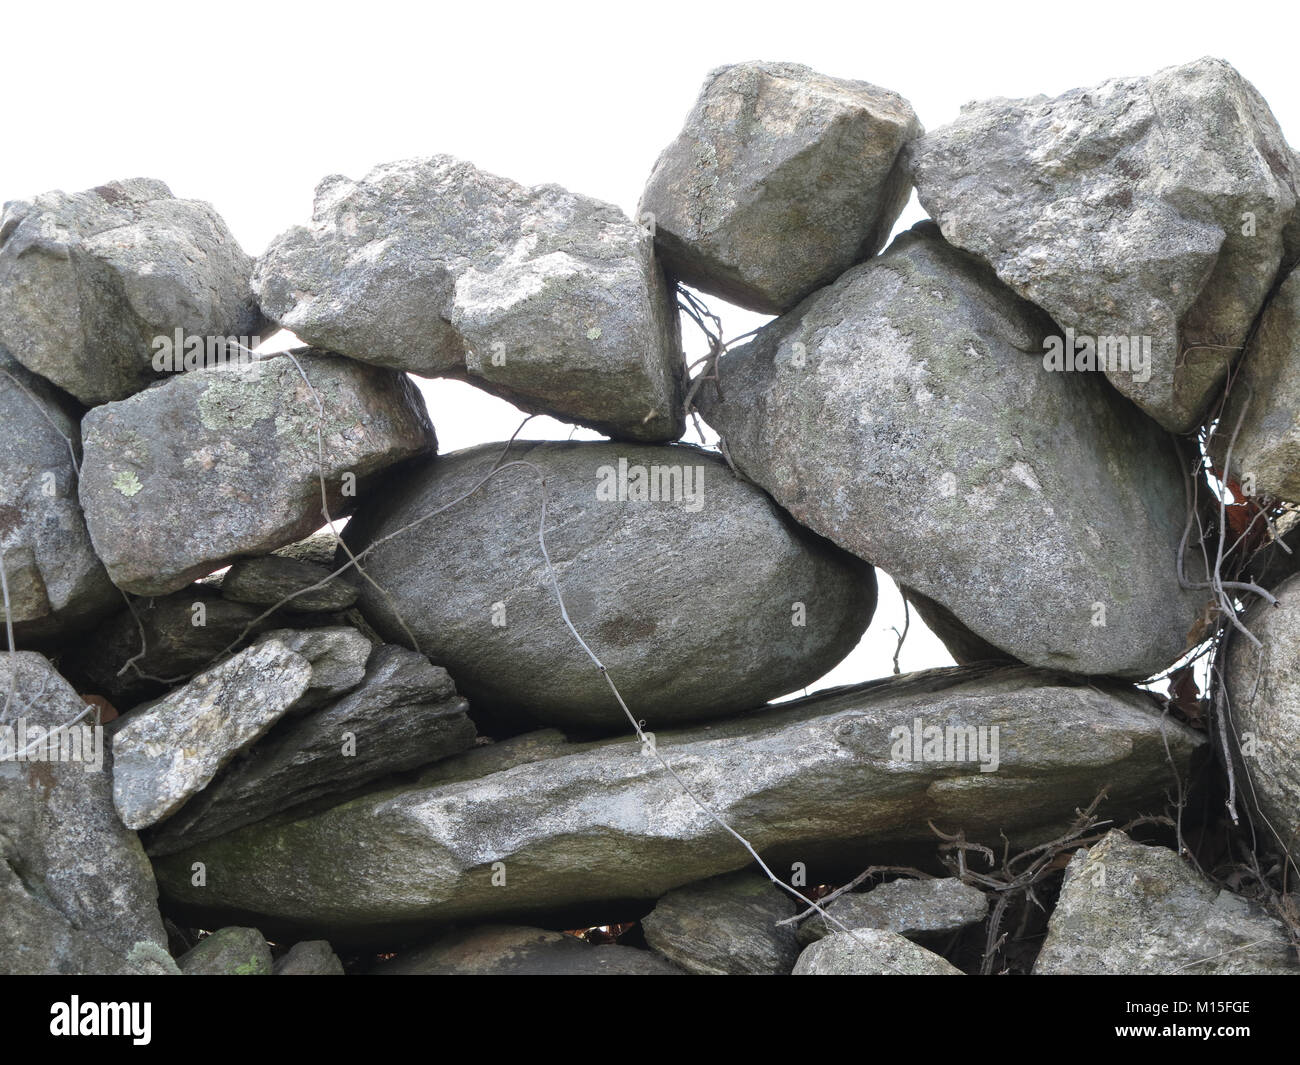 Pile of Gray Rocks Balancing on Each Other - Stock Image